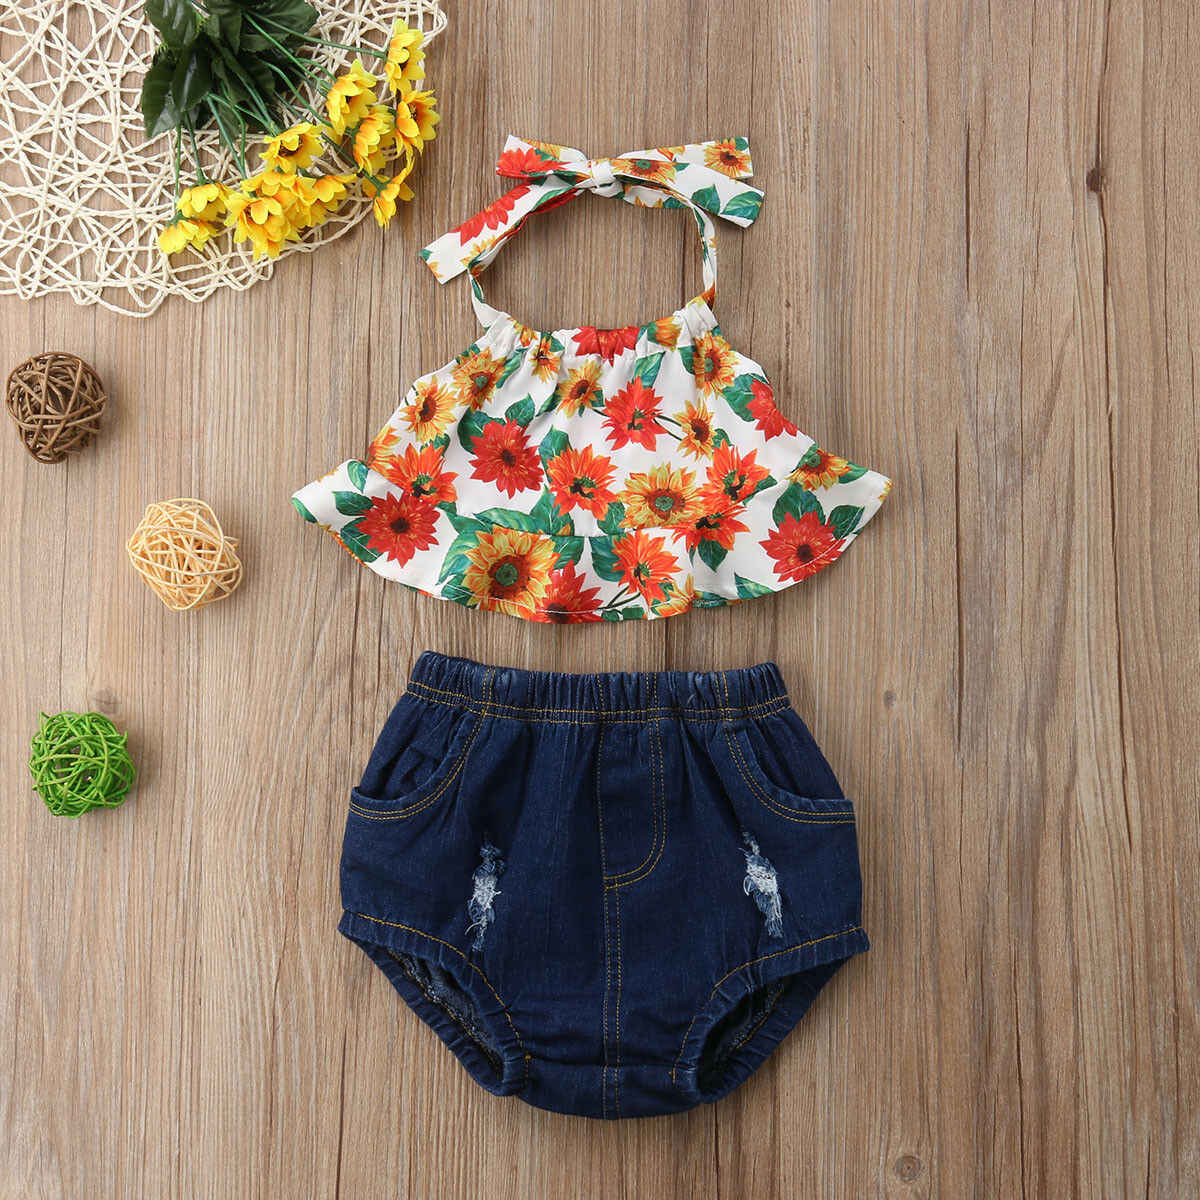 Summer 2PCS Baby Girls Sunflower Tops Dress Shorts Pants Outfits Clothes Set